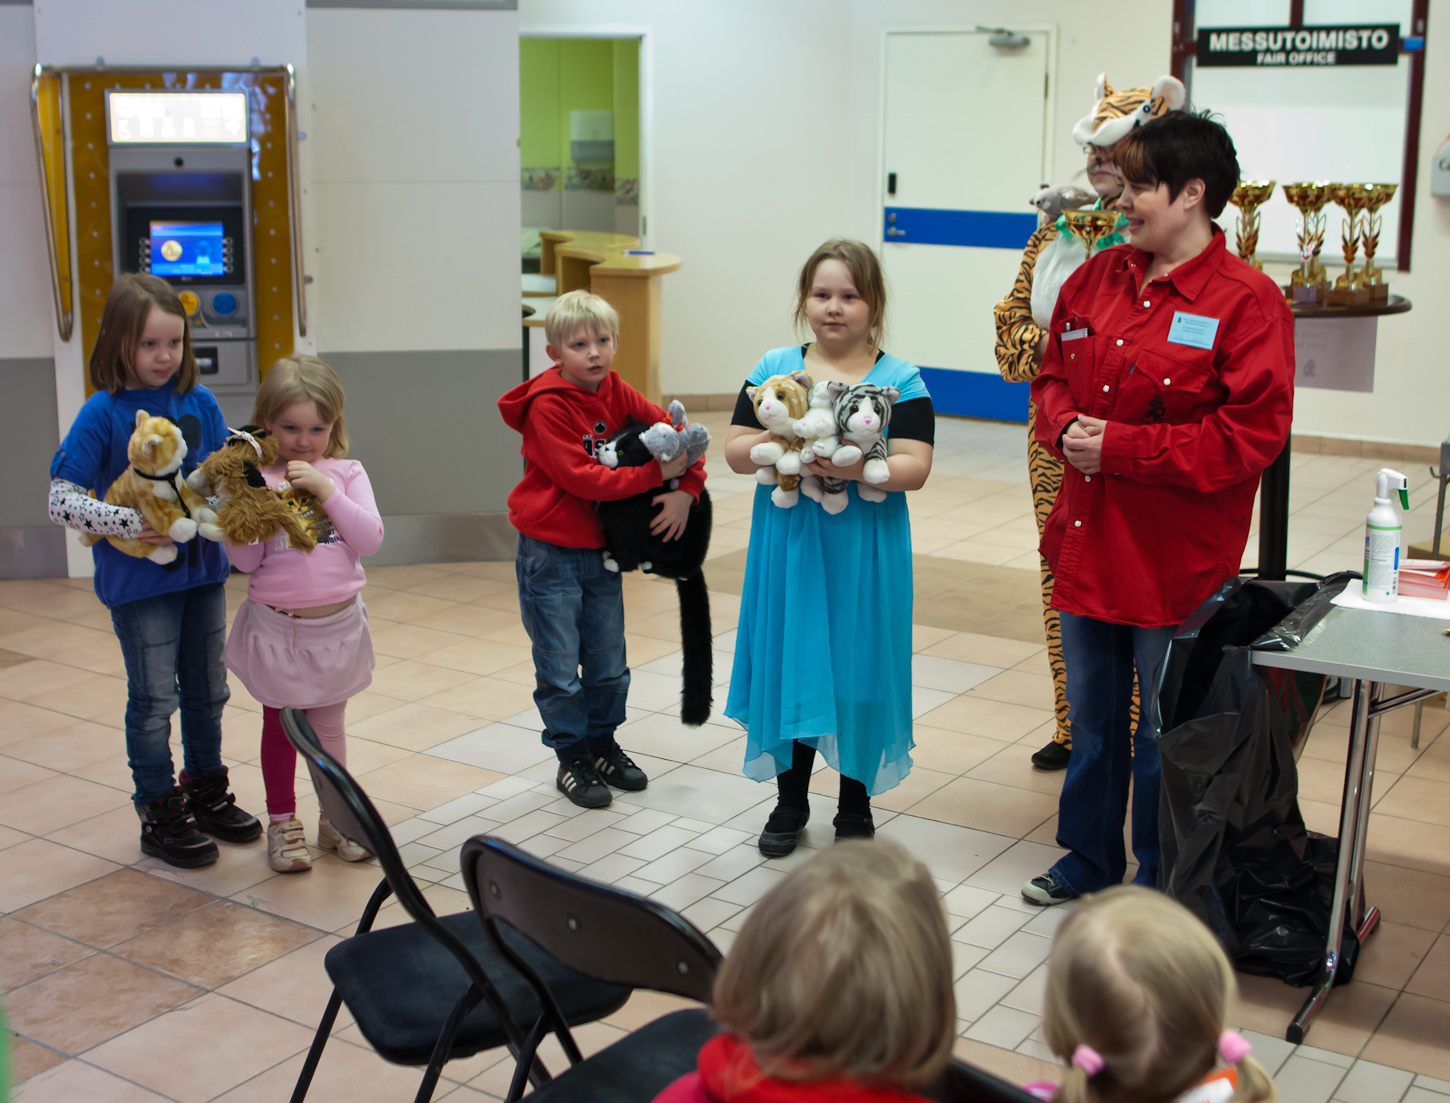 the toy cat contest, photo 191033, 2012-03-17